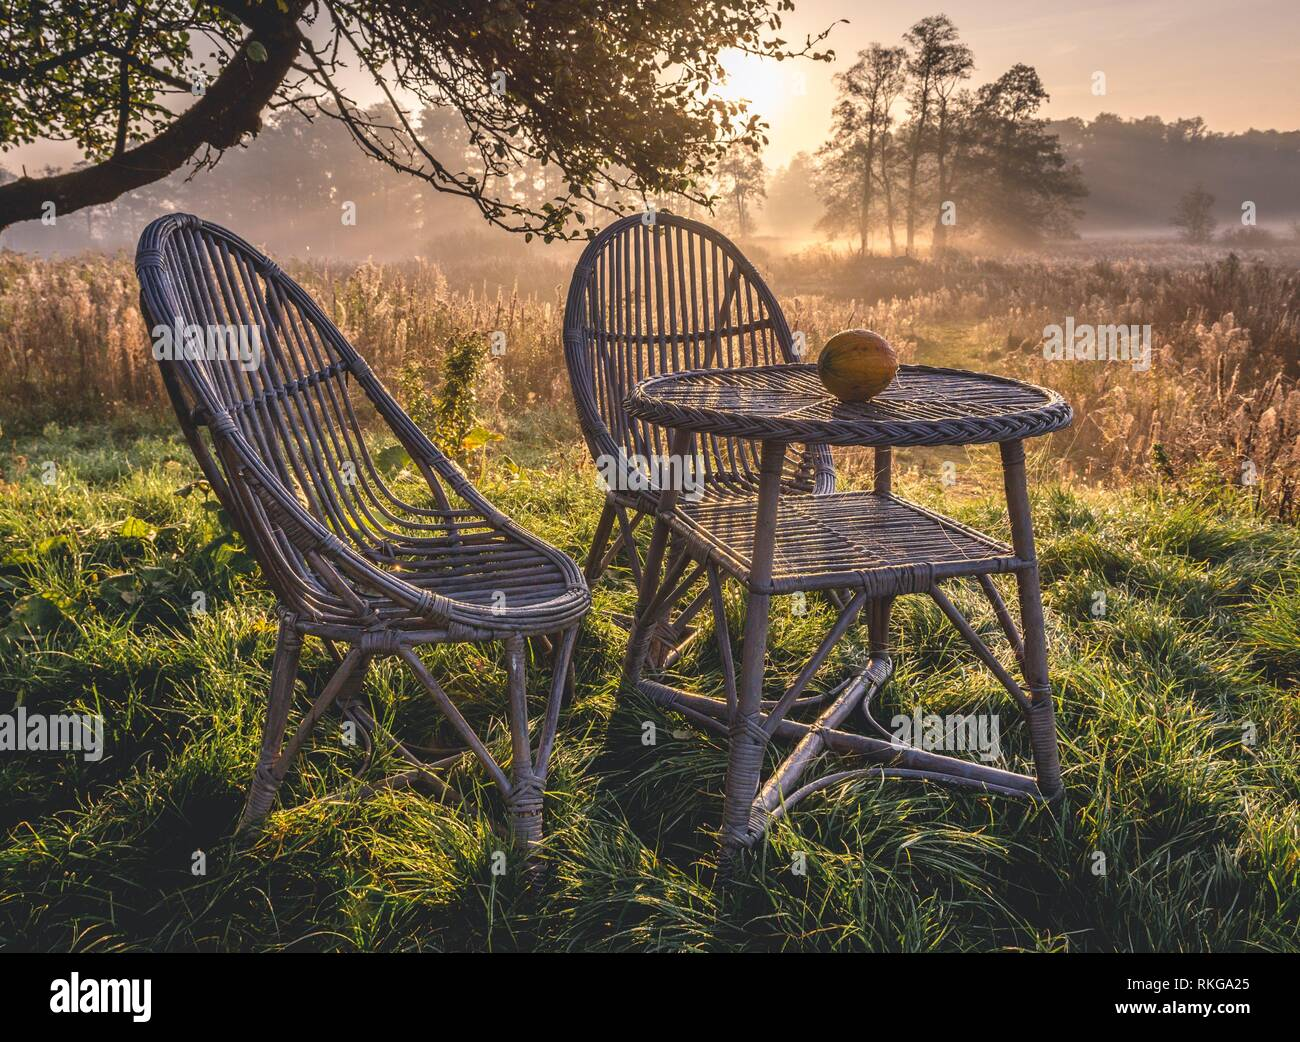 Morning in Gorki village, Sochaczew County on the edge of Kampinos Forest, large forests complex in Masovian Voivodeship of Poland. - Stock Image